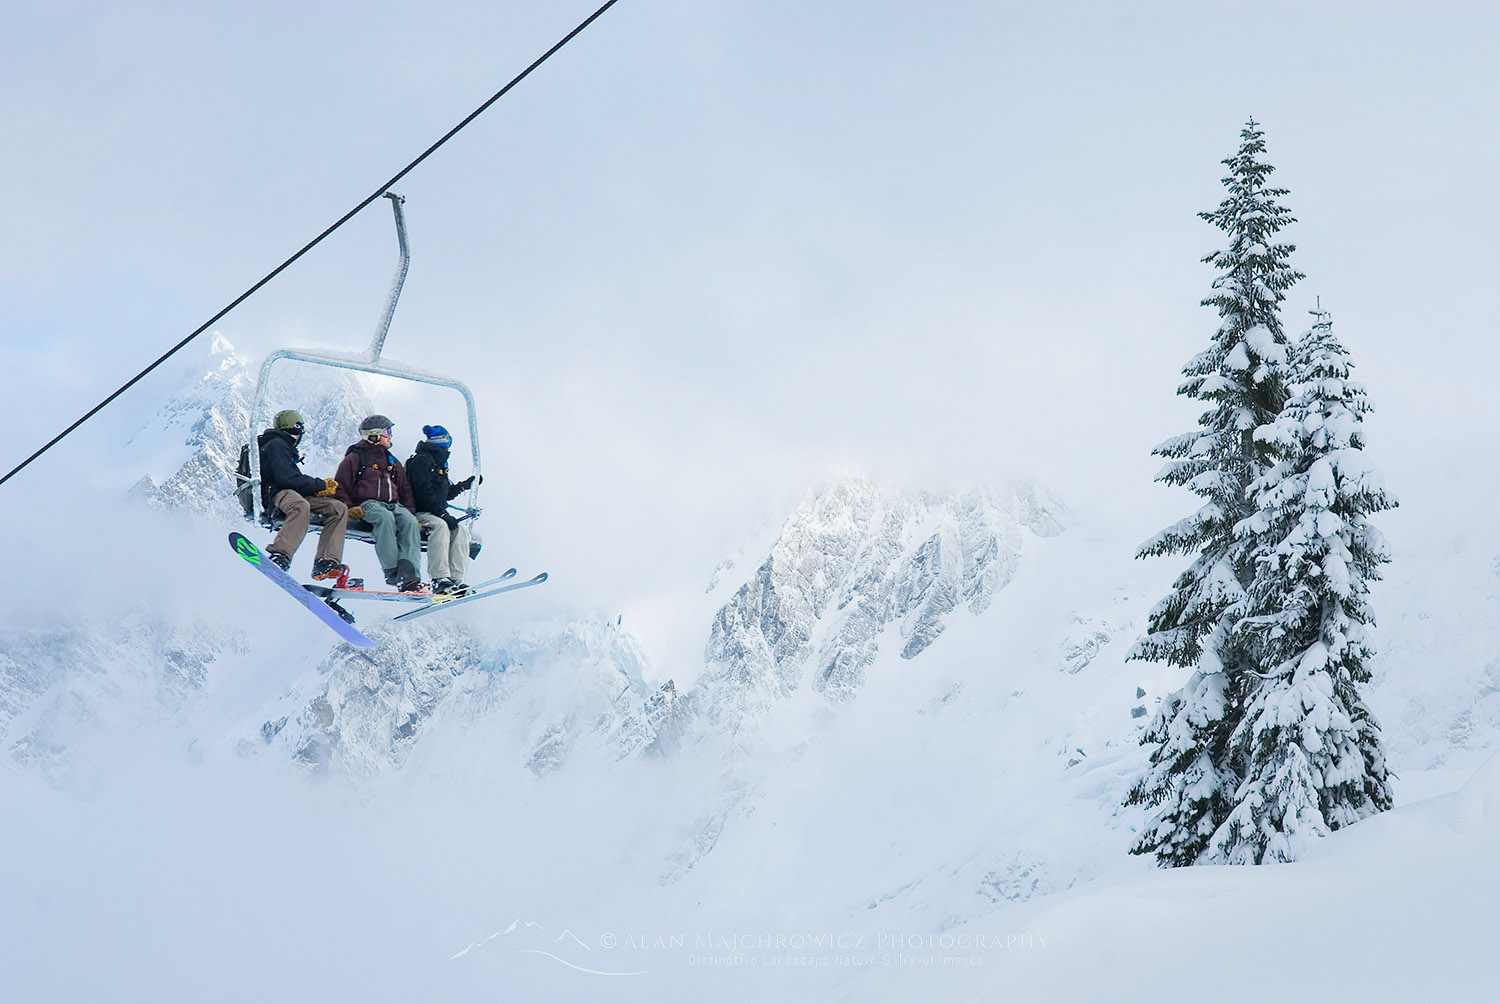 Ski lift Mount Baker Ski Area Winter Photography Trip Planning